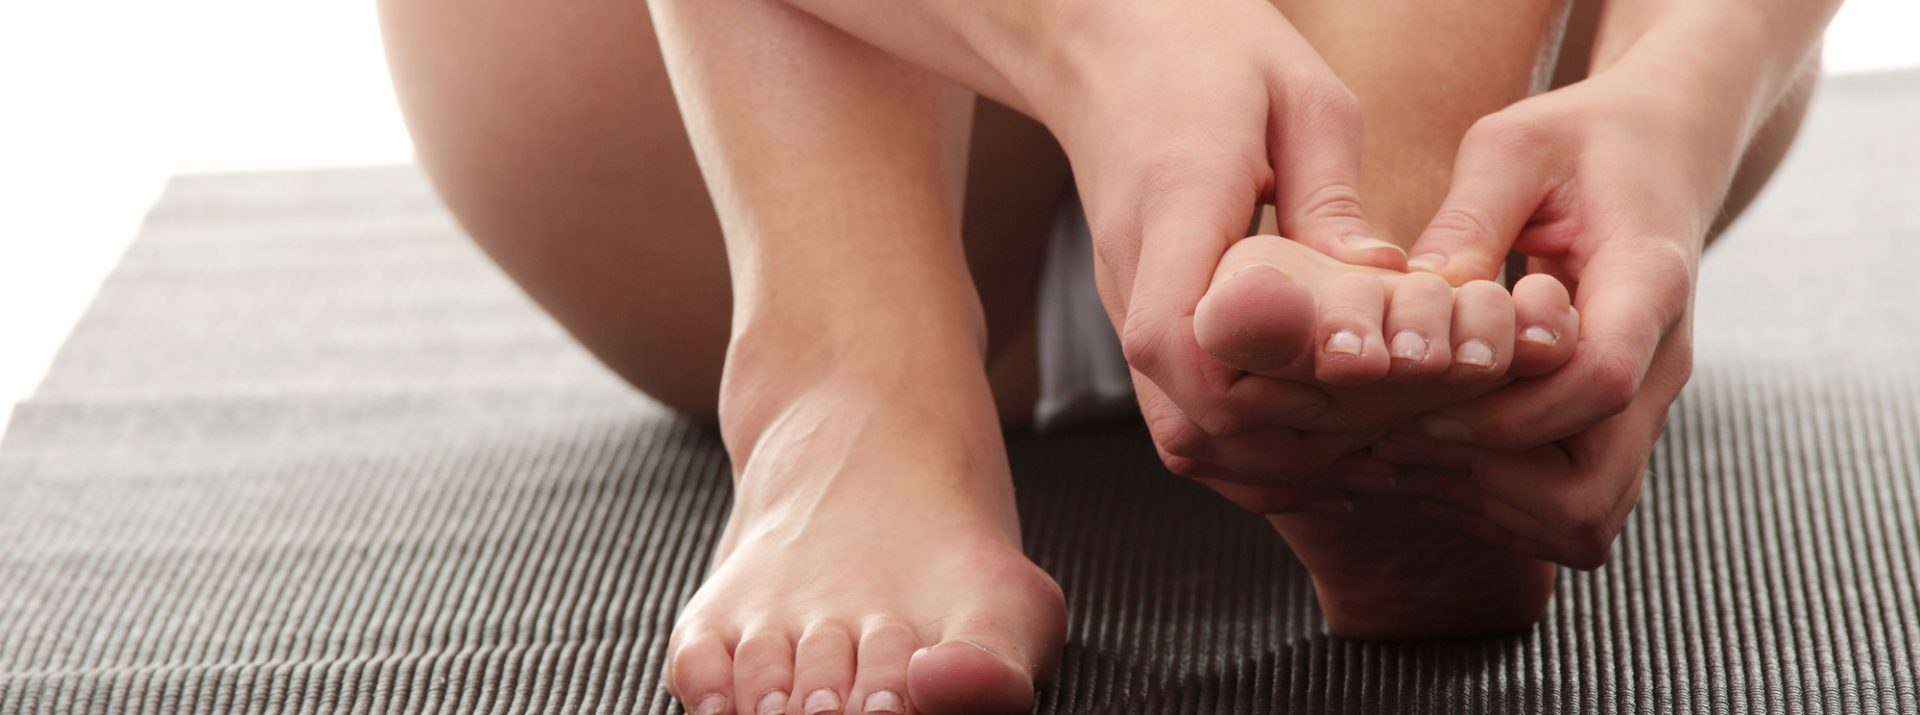 Adult Foot Health